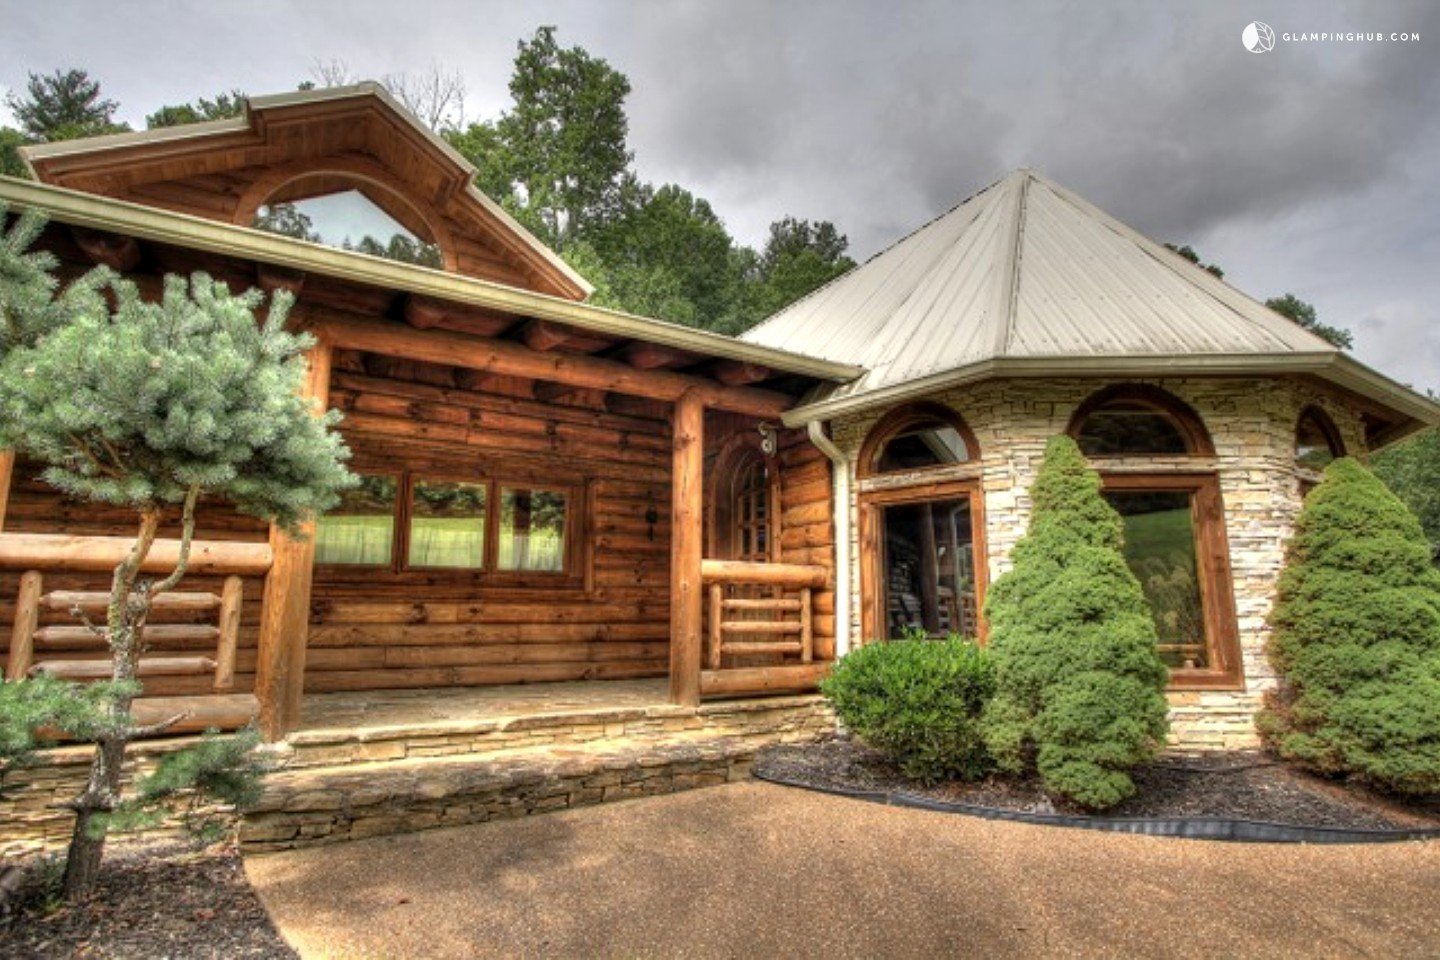 Luxury cabin rental near the great smoky mountains for Smoky mountain nc cabin rentals